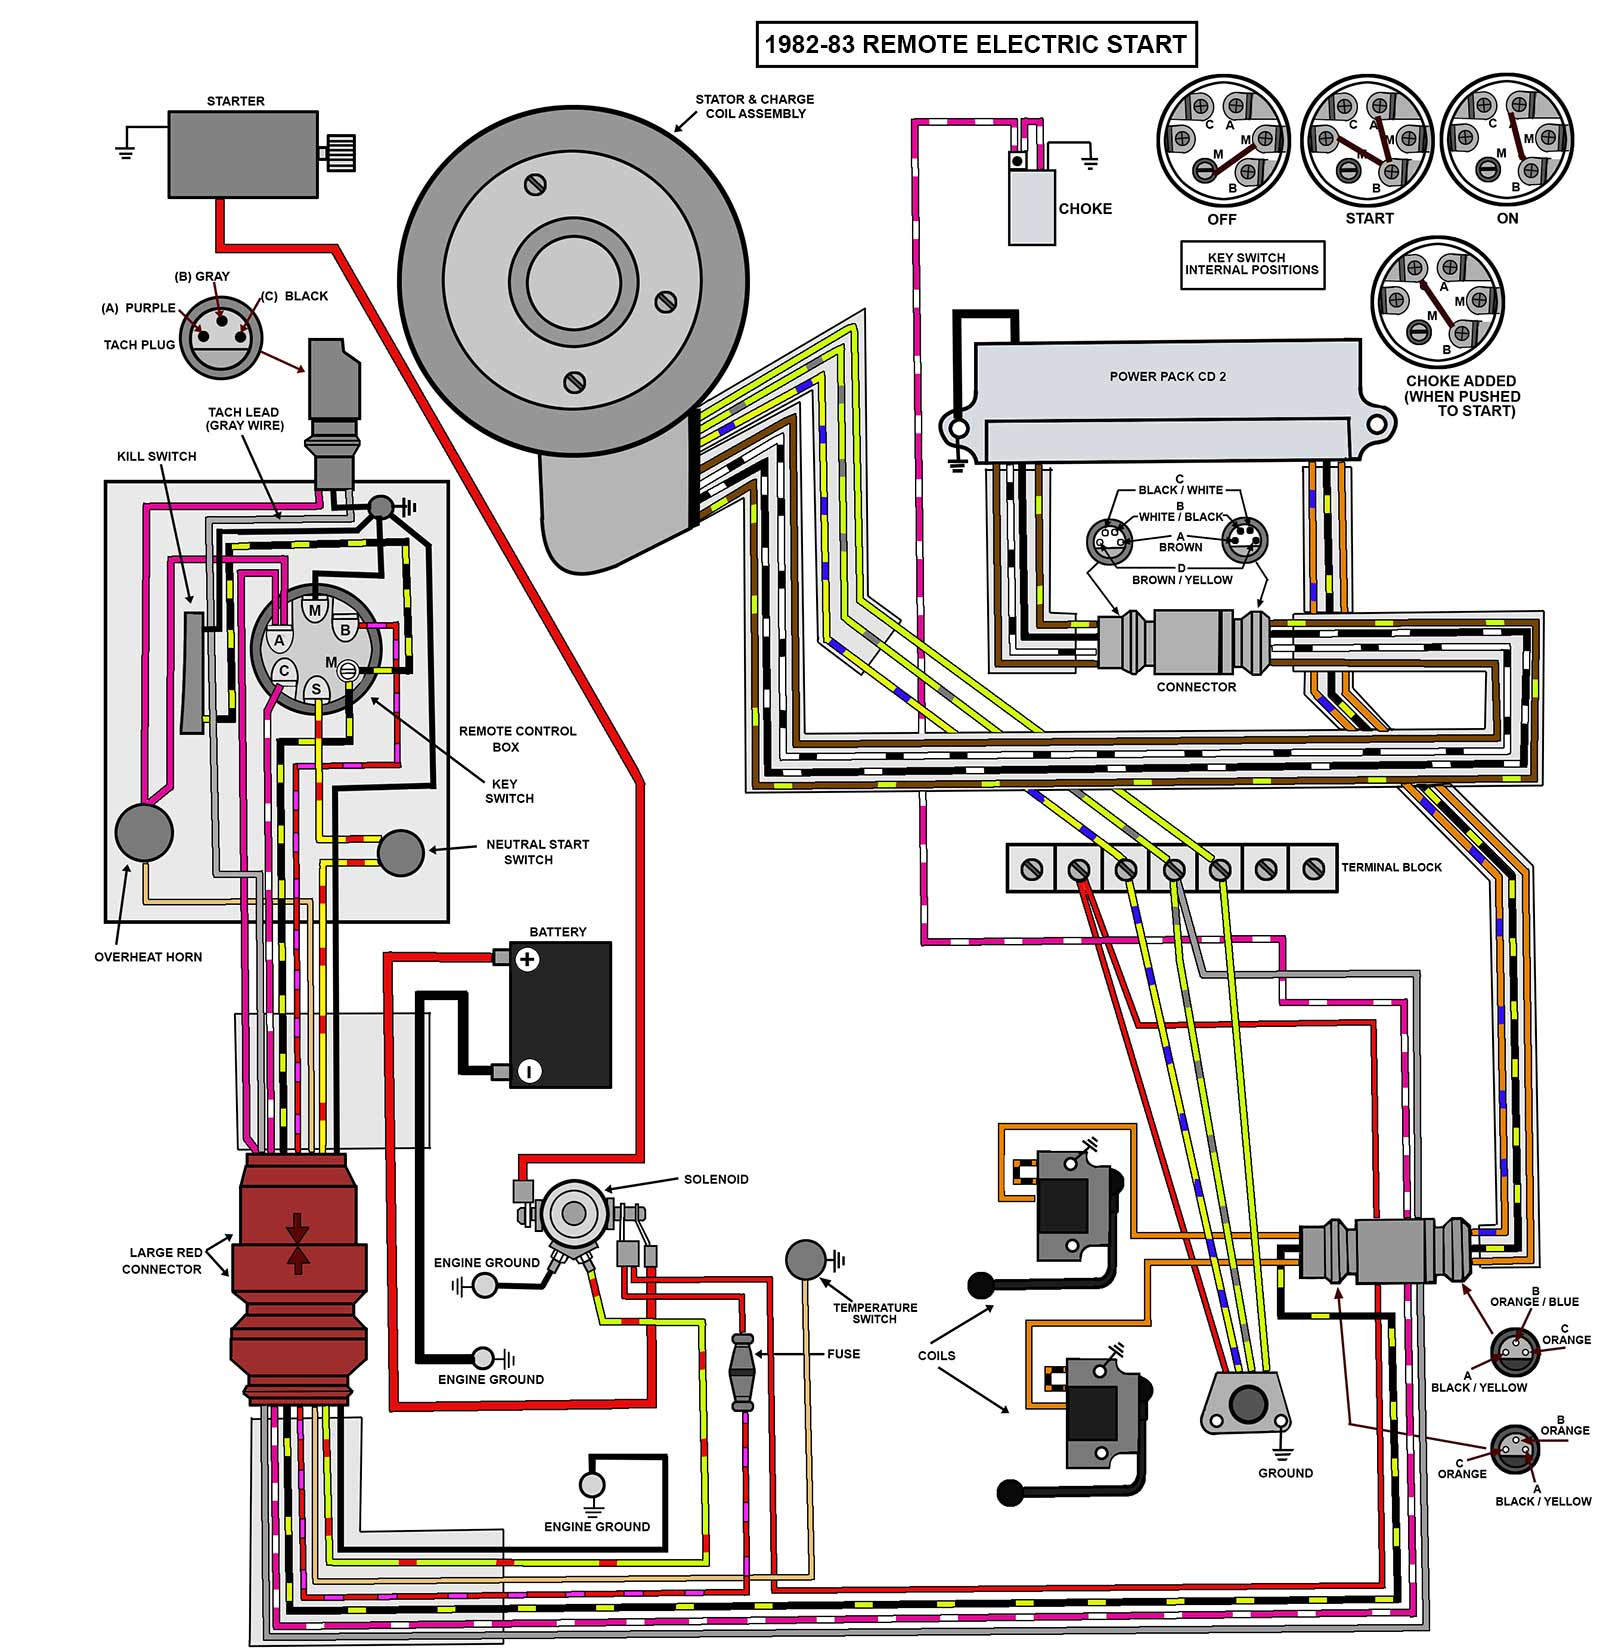 25_35_82 83_elec remote mastertech marine evinrude johnson outboard wiring diagrams Mercury Outboard Wiring Schematic Diagram at fashall.co